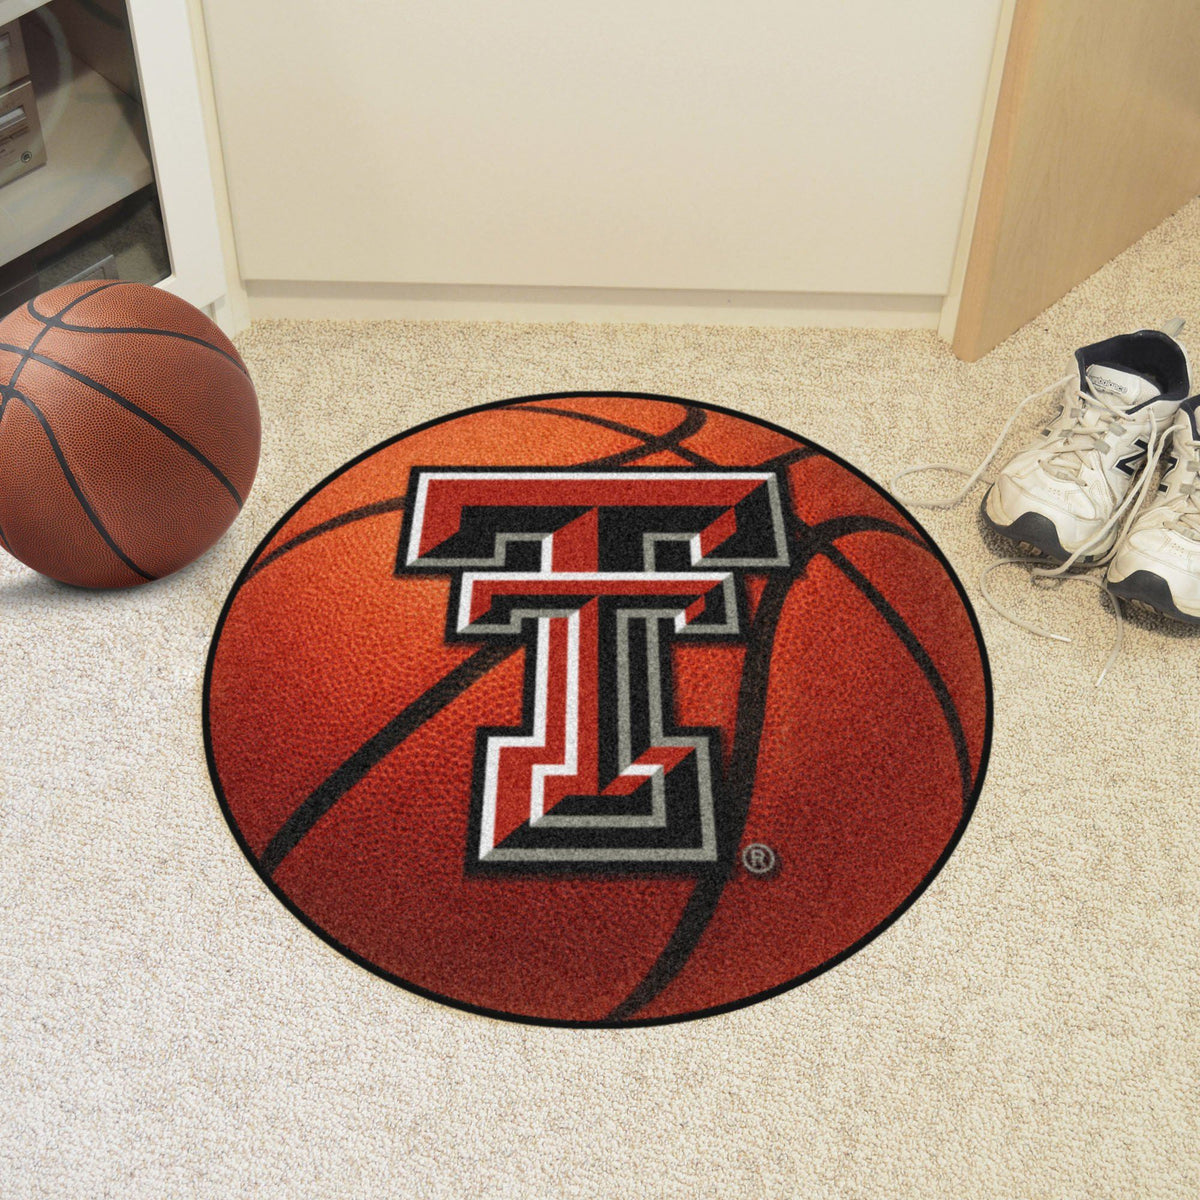 Collegiate - Basketball Mat: T - Z Collegiate Mats, Rectangular Mats, Basketball Mat, Collegiate, Home Fan Mats Texas Tech